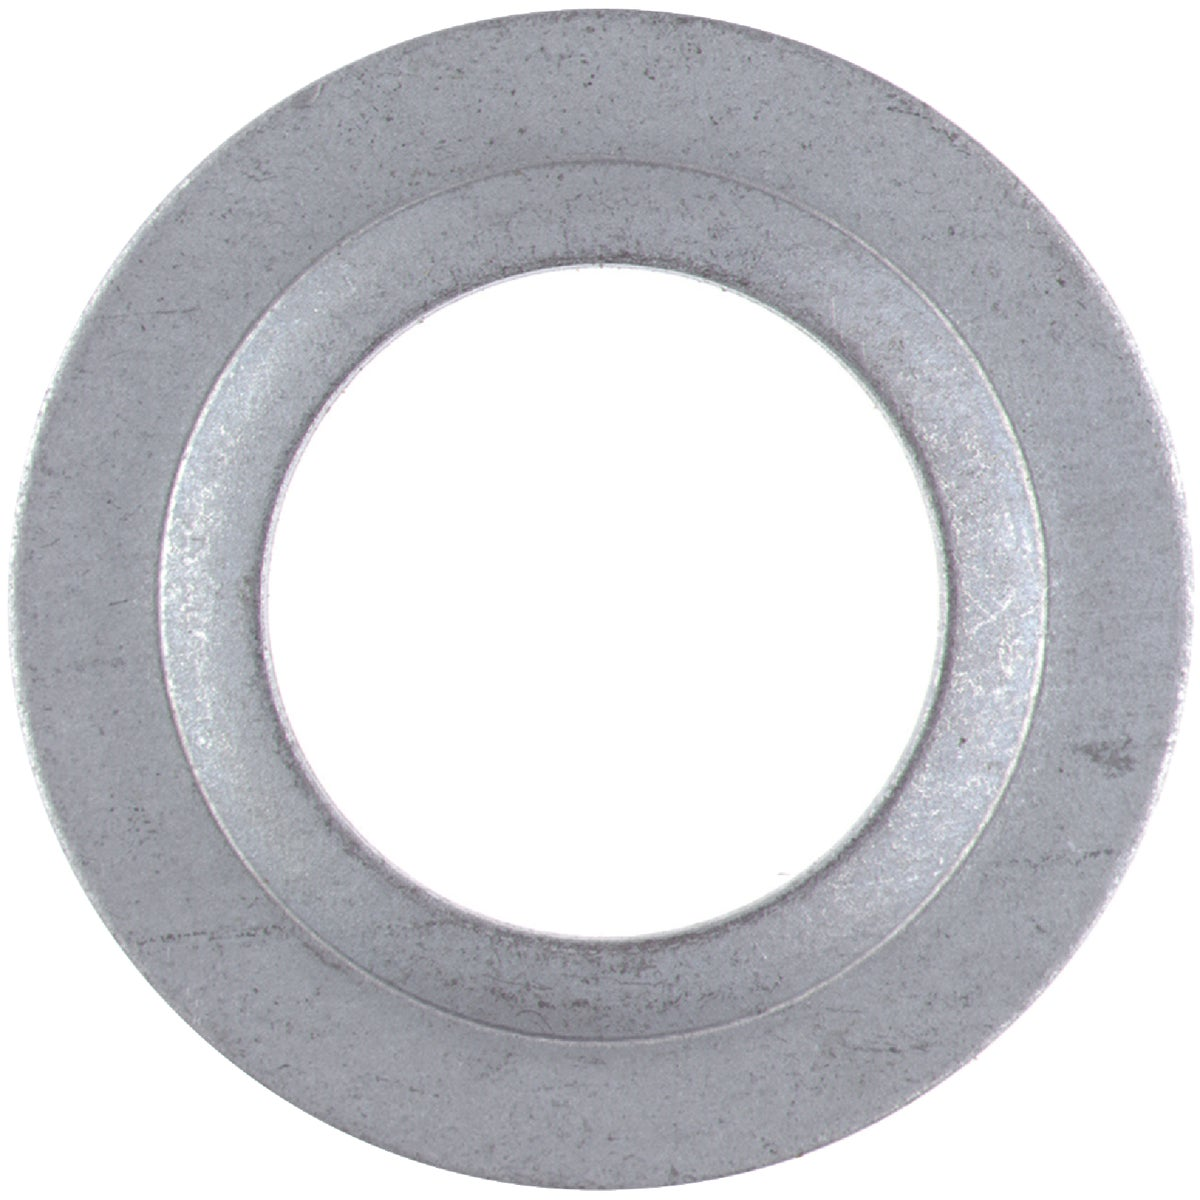 2-1/2X2 REDUCE WASHER - WA1762 by Thomas & Betts